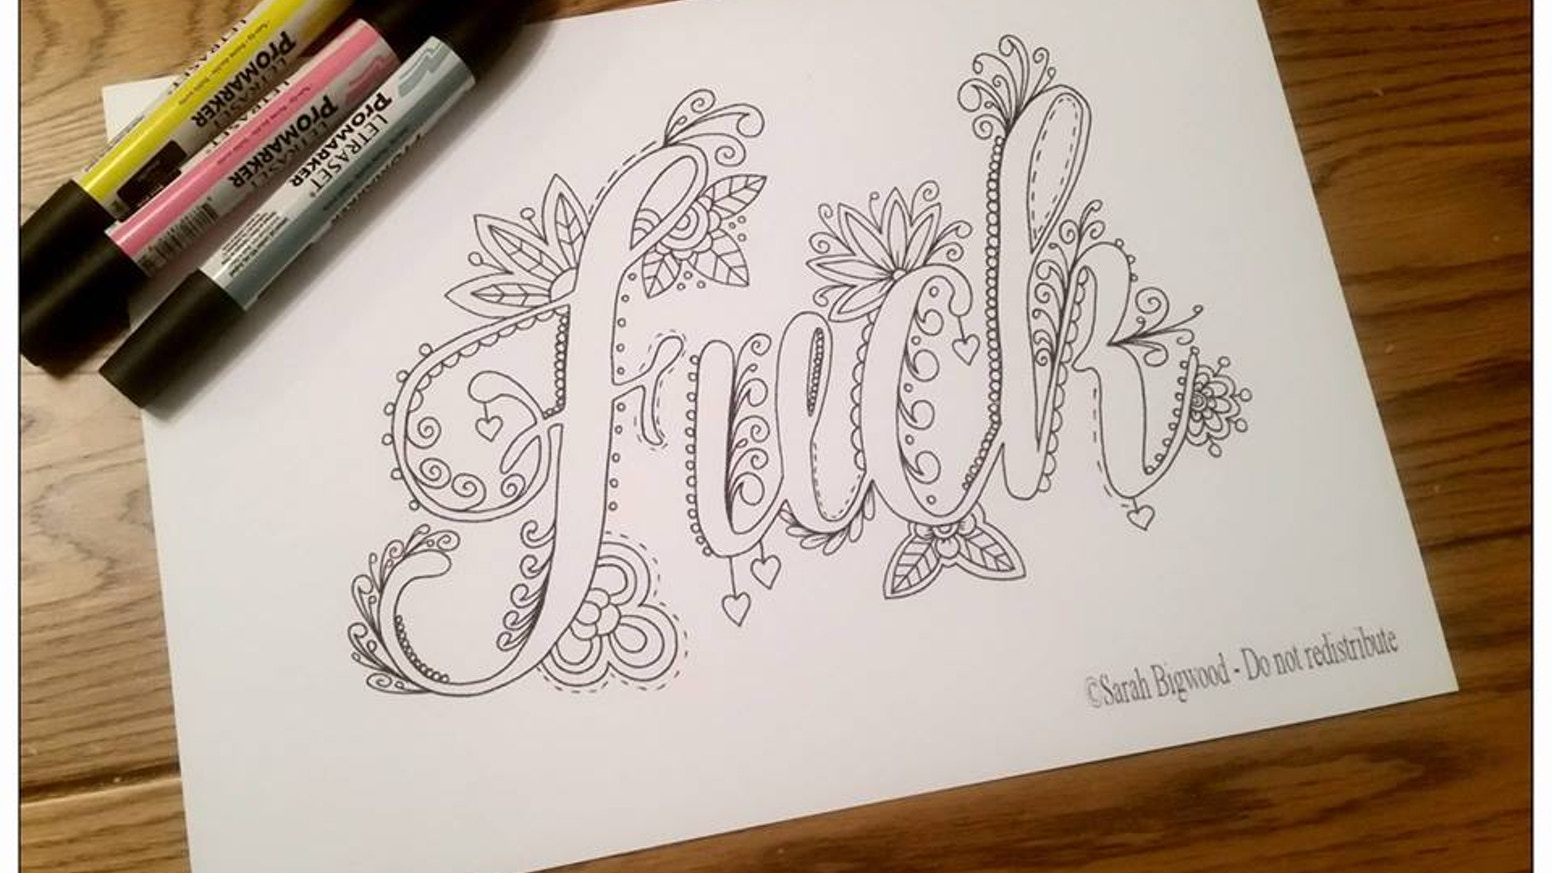 A Fancy Swear Word Colouring Book For Adults The Days When Only Big